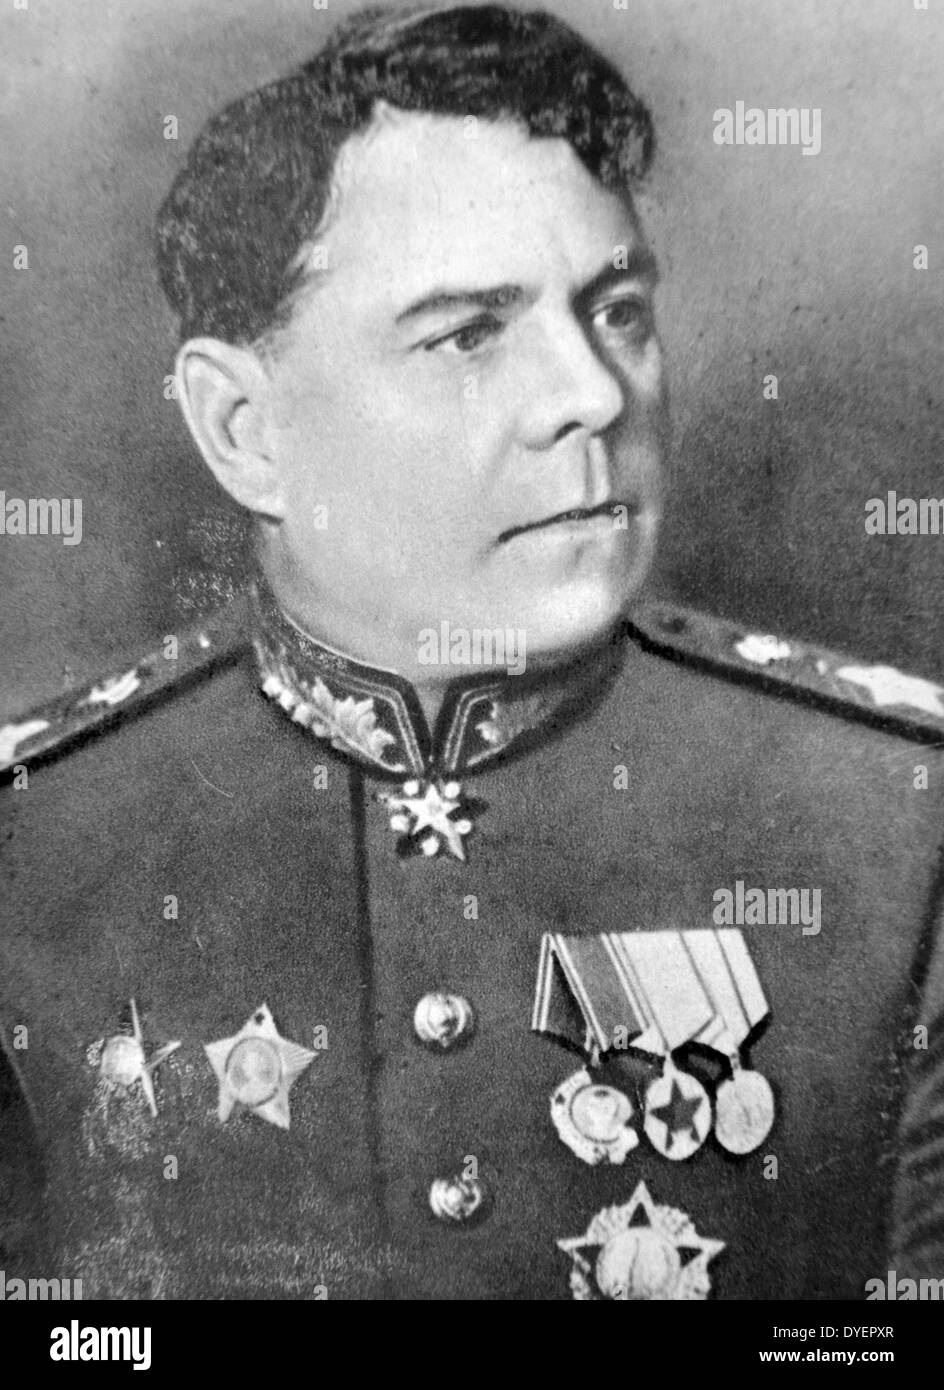 Aleksandr Mikhailovich Vasilevsky (1895 - 1977) was a Russian career officer in the Red Army who was promoted to Stock Photo